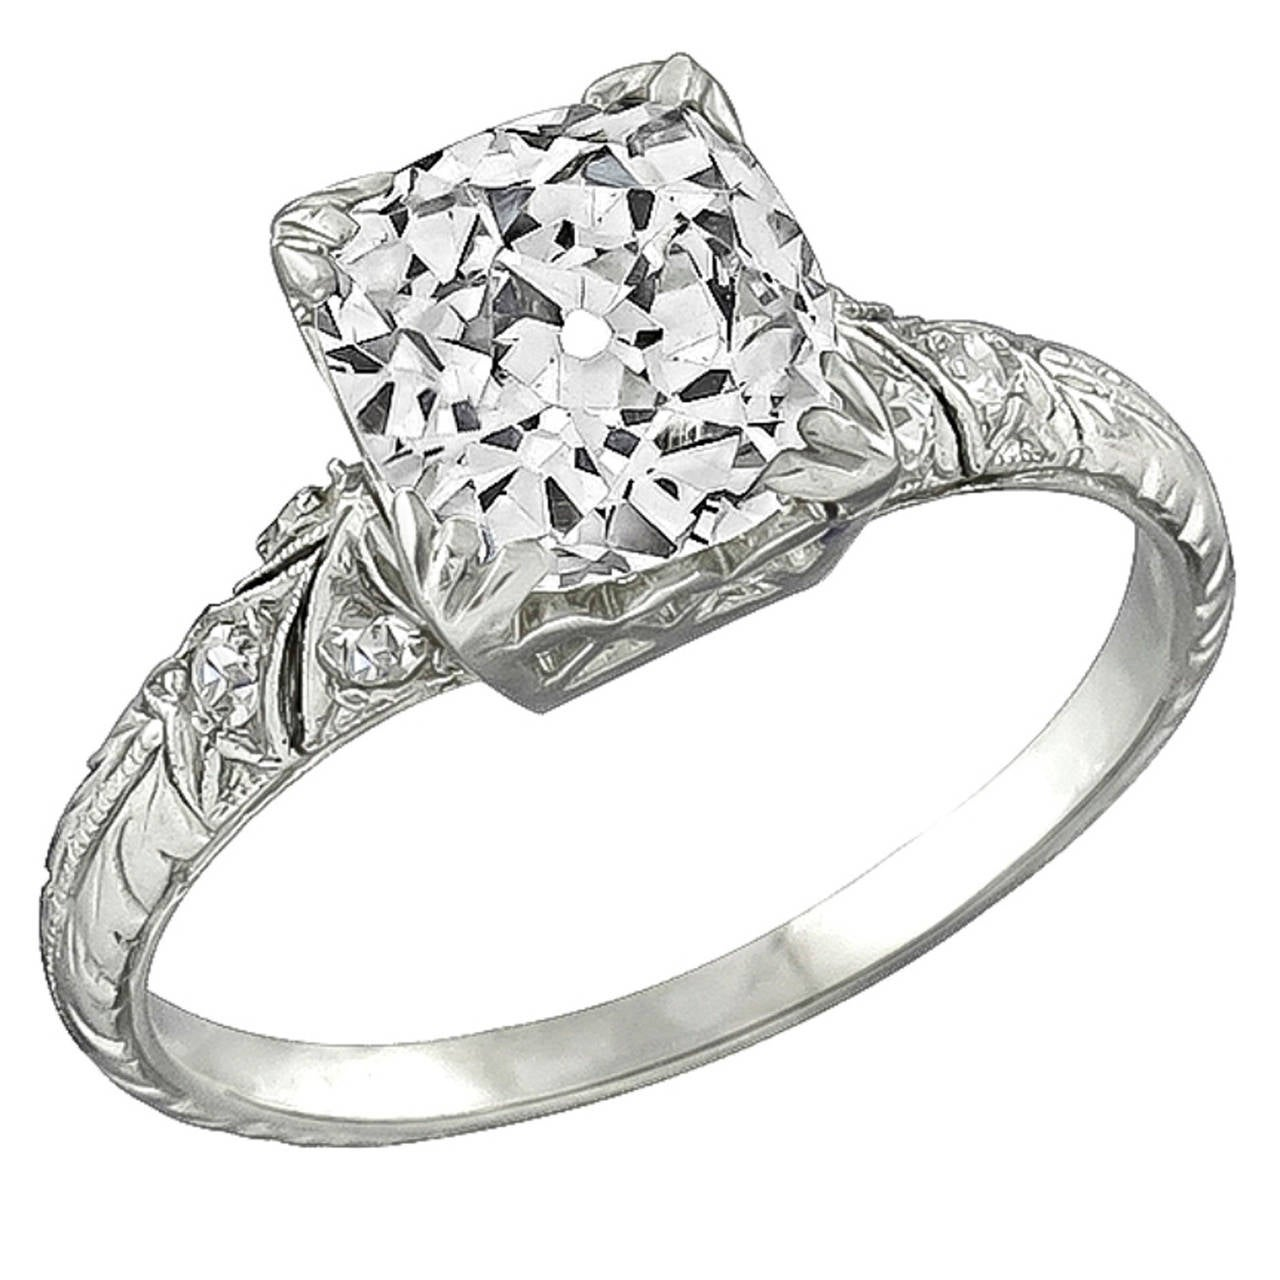 2 05 Carat Cushion Cut Diamond Platinum Engagement Ring For Sale at 1stdibs